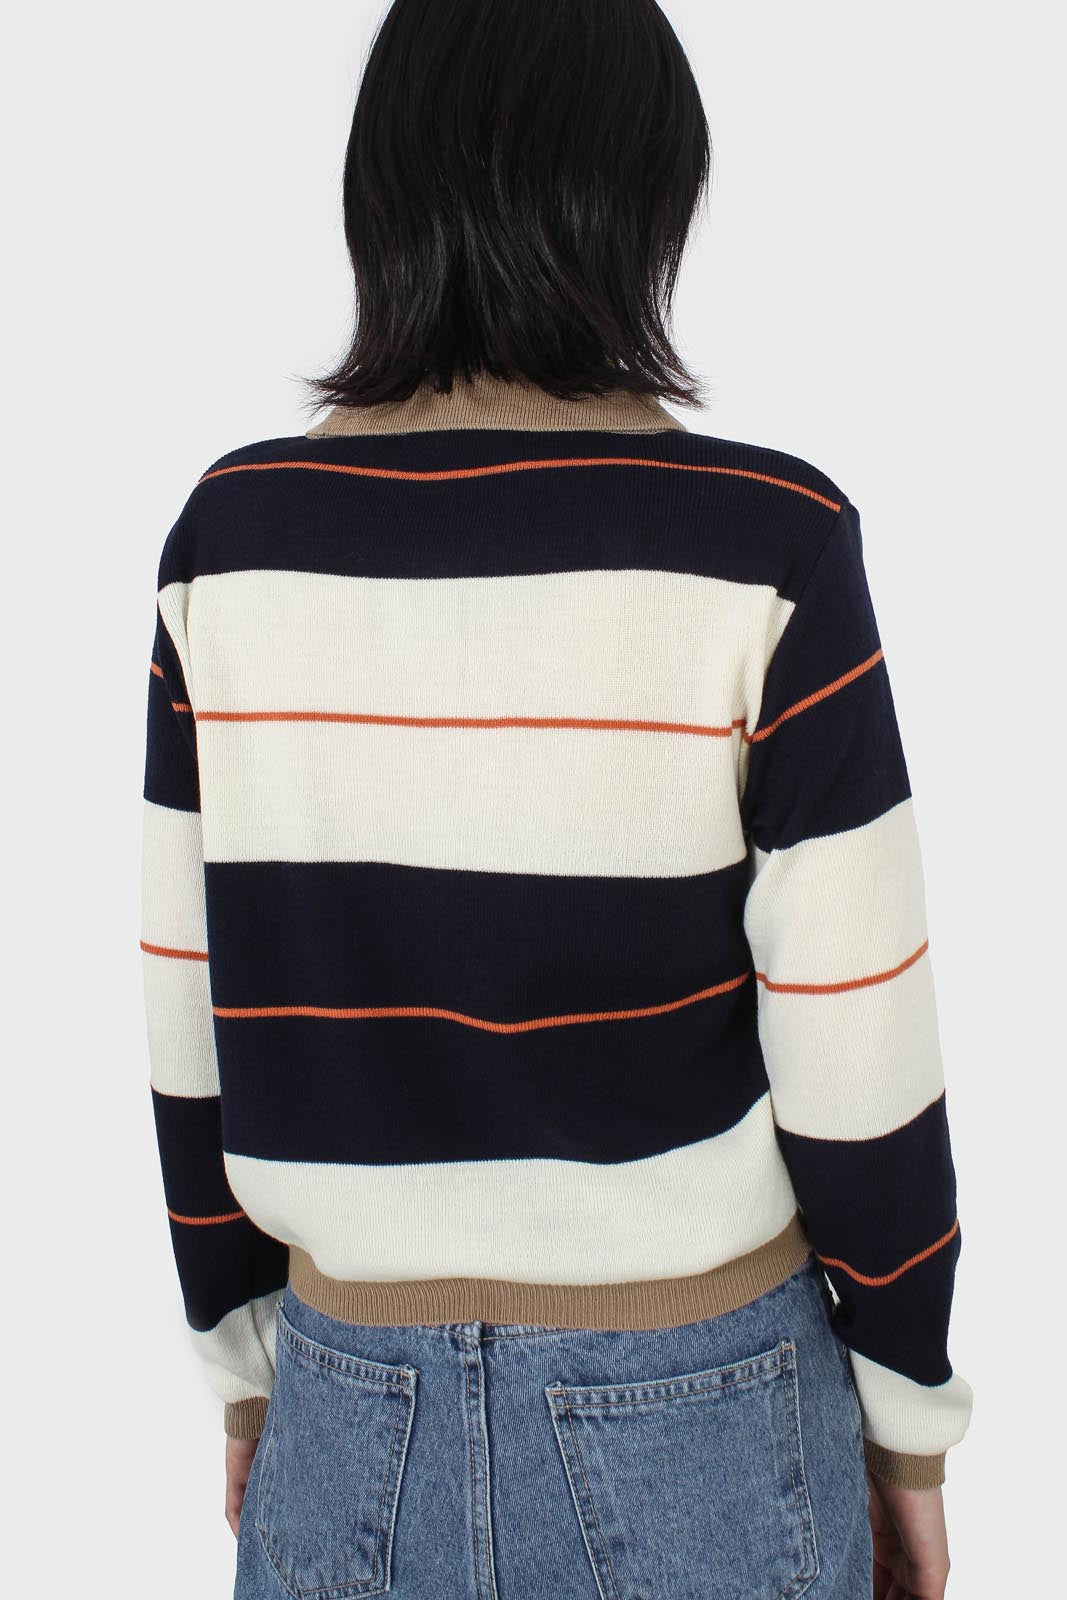 Navy and ivory thick multistriped polo knit top5